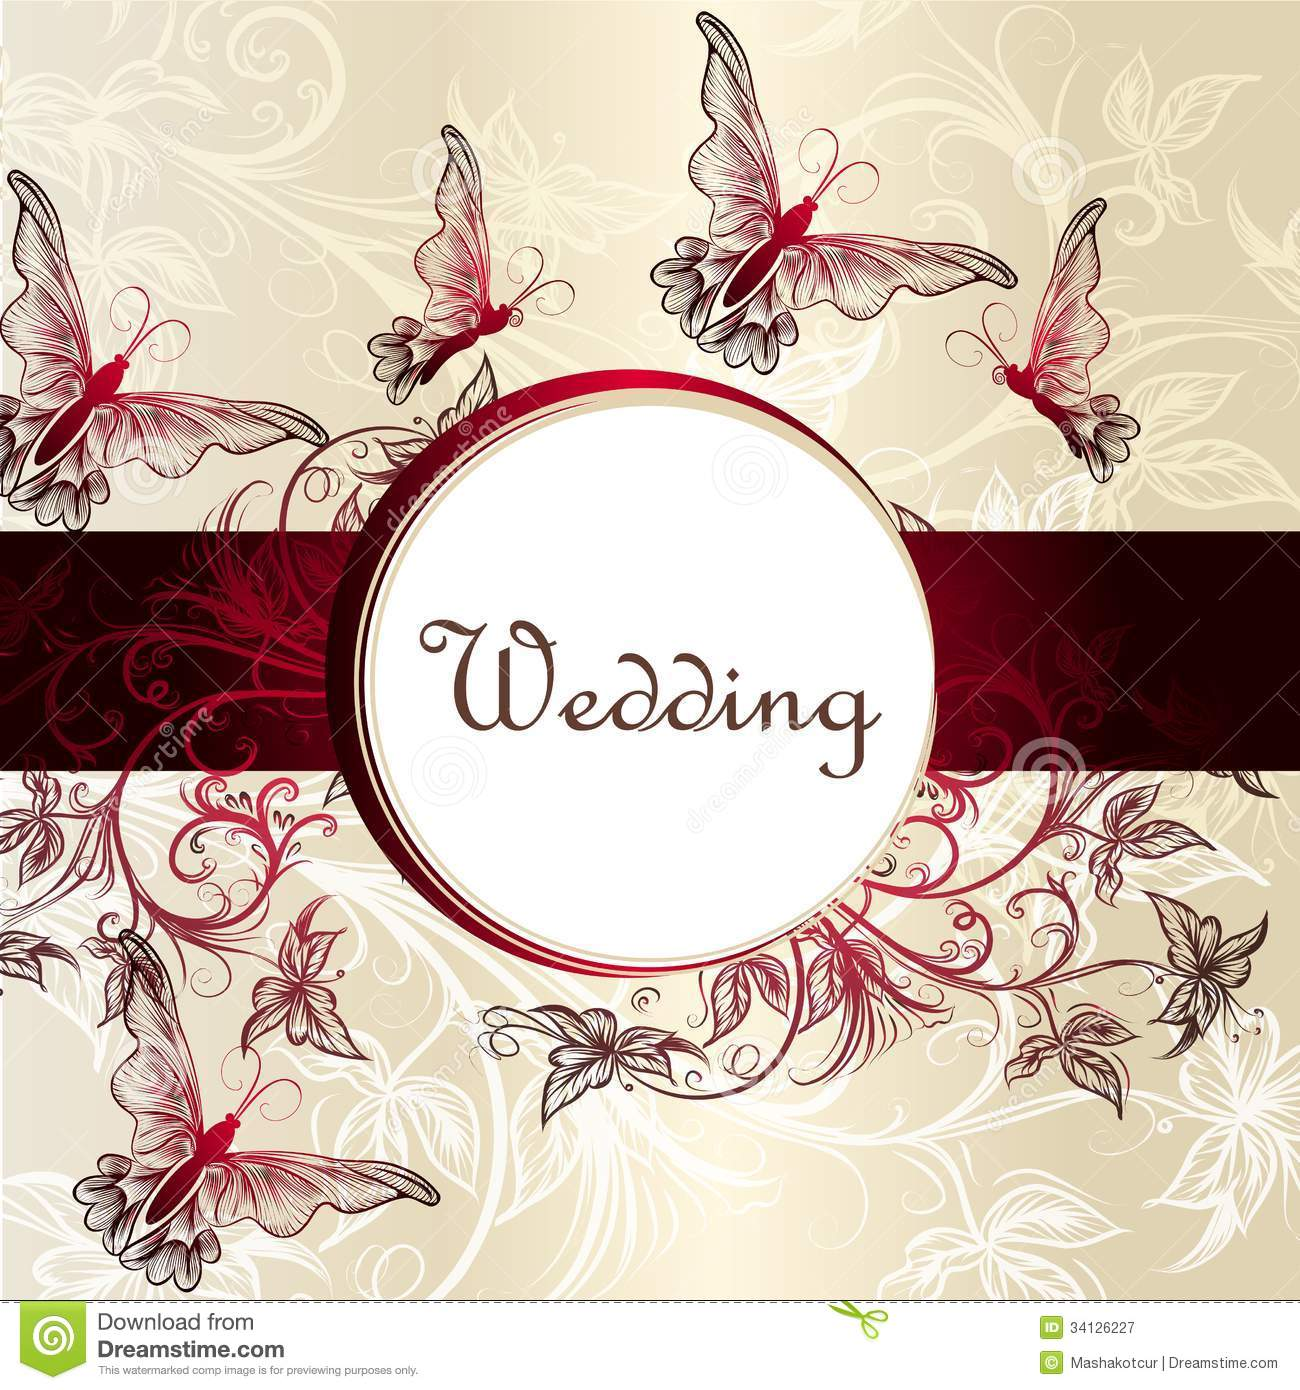 Wedding Invitation Card For Design Stock Vector Illustration of